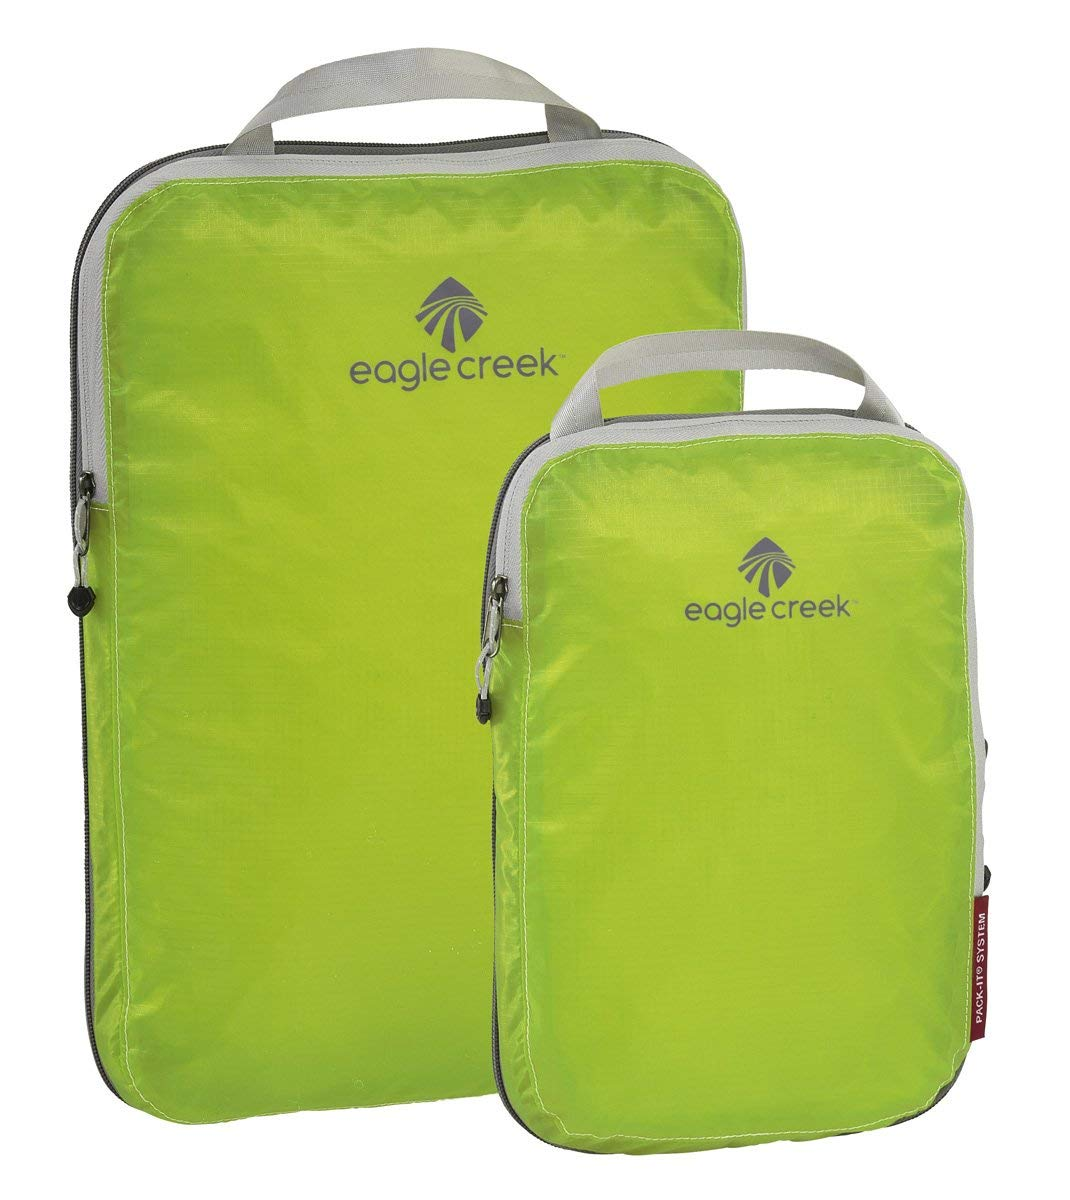 Travel Gear: Eagle Creek Packing Cubes